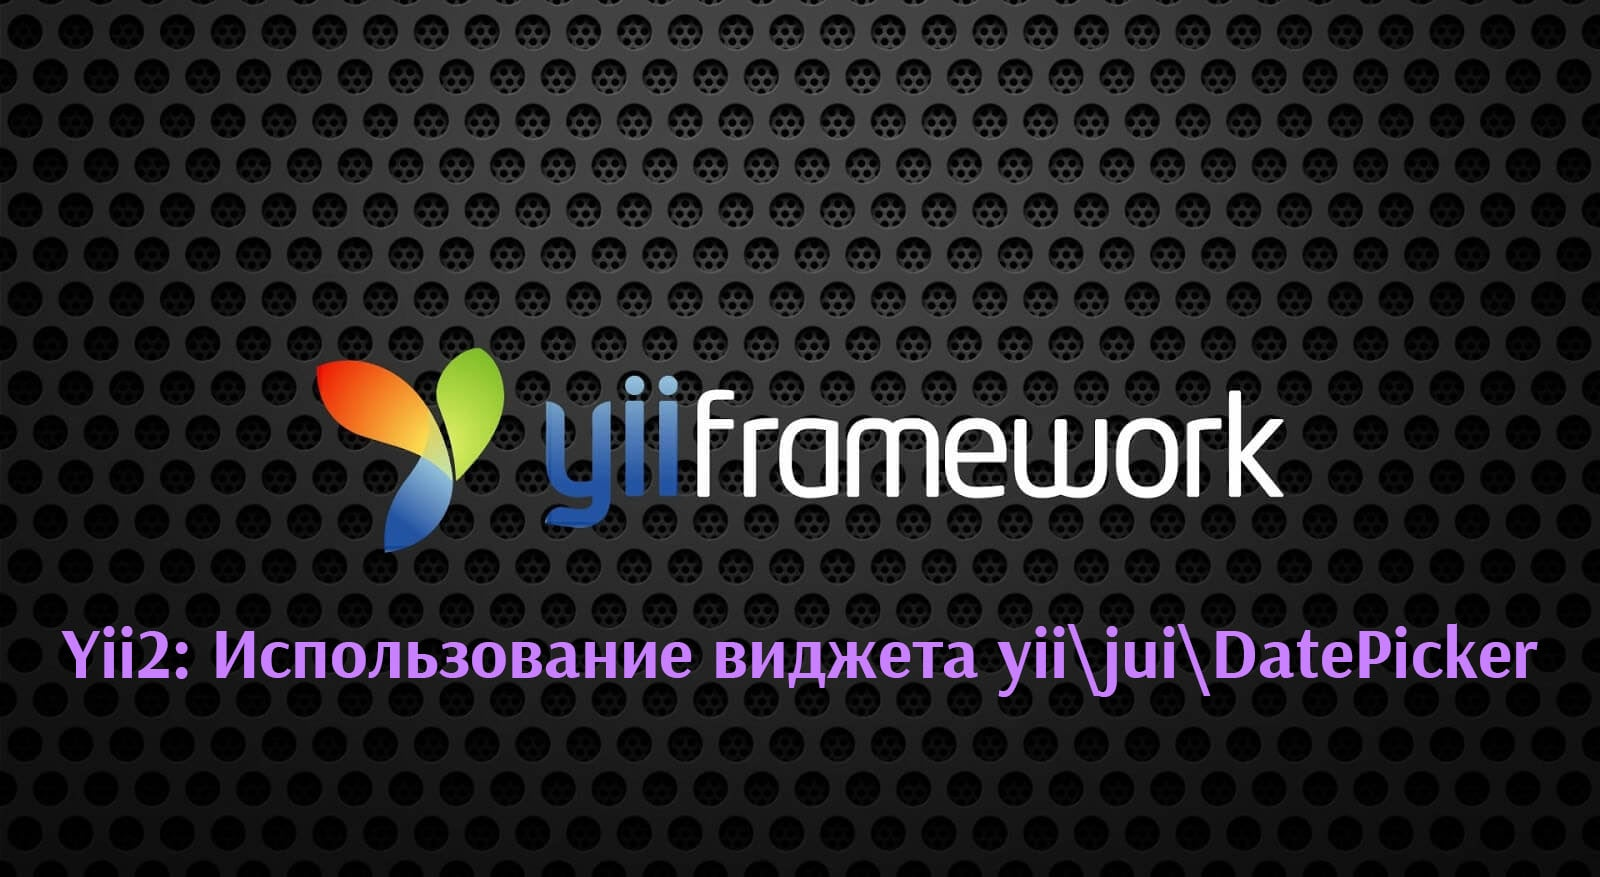 Yii2: Использование виджета yii\jui\DatePicker